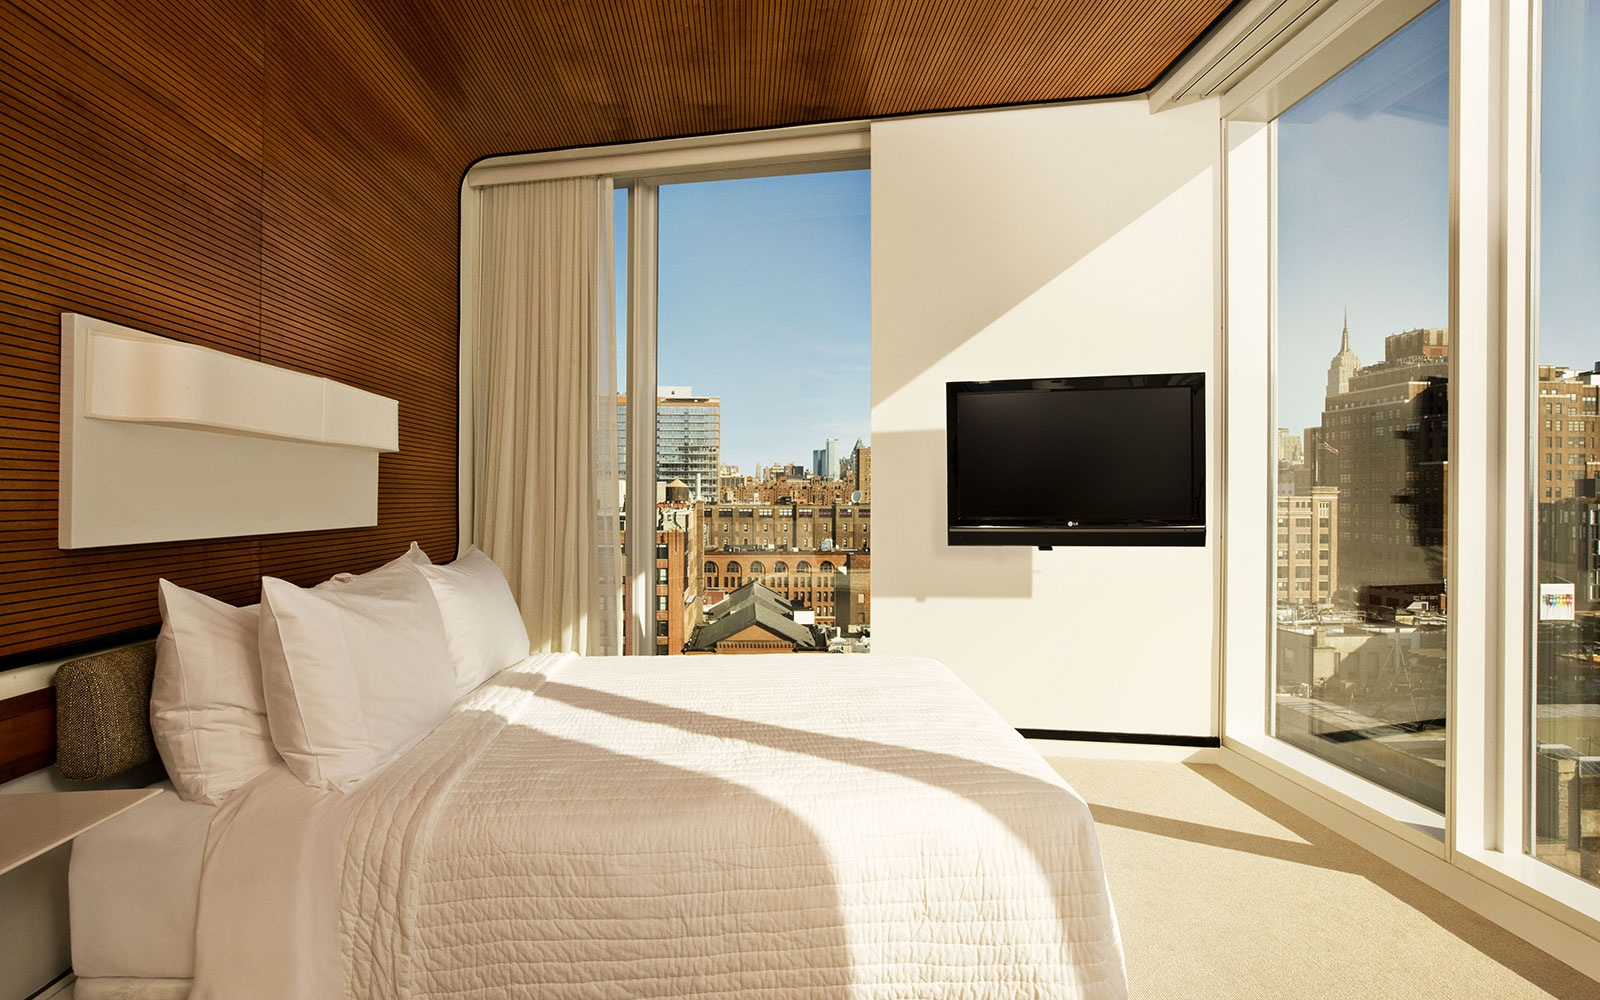 Weekend getaways in nyc like Standard Hotel on the KR Edit